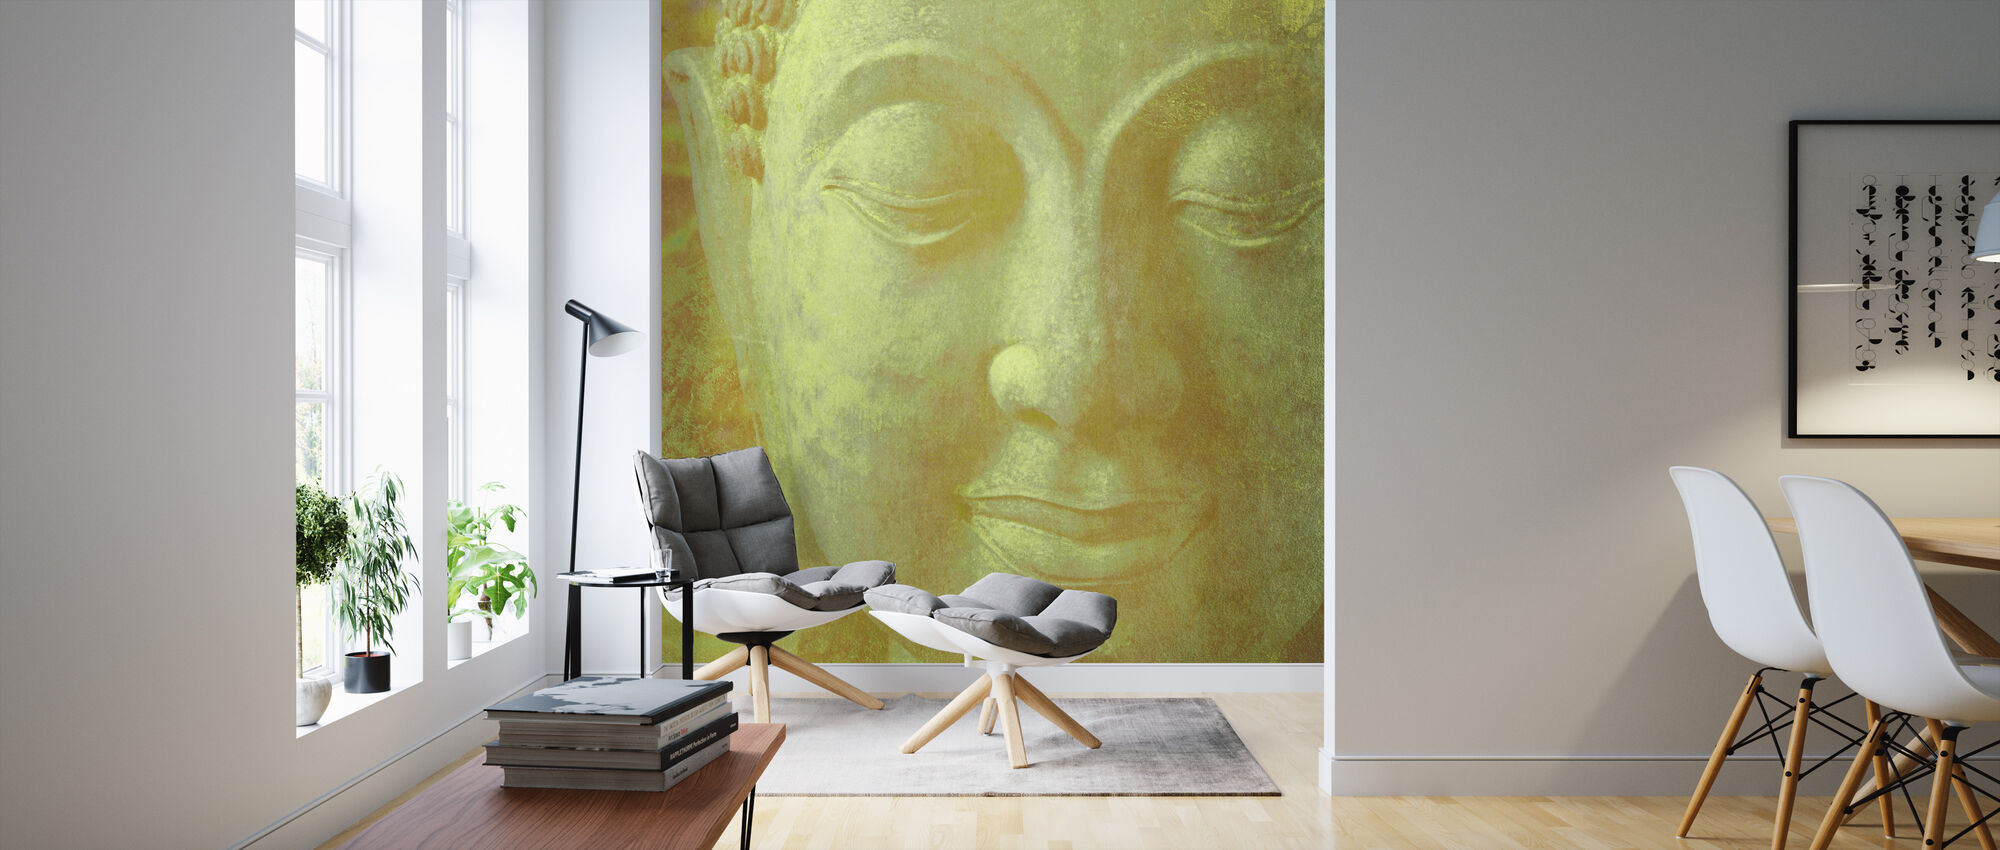 Yellow Buddha Squared - Wallpaper - Living Room